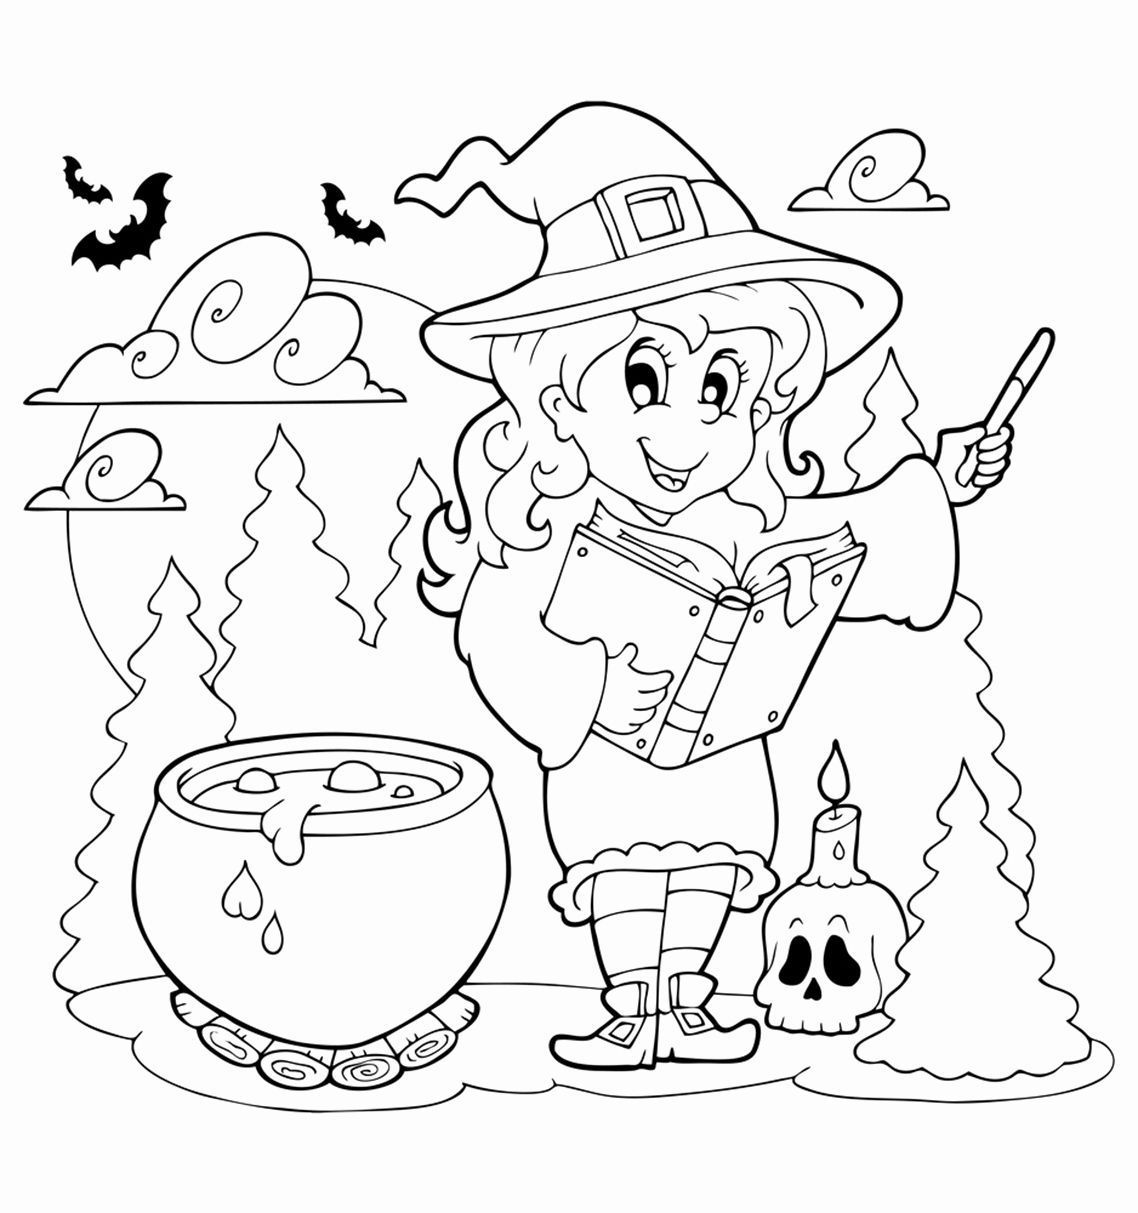 Coloring Activities For Toddlers Awesome Free Coloring